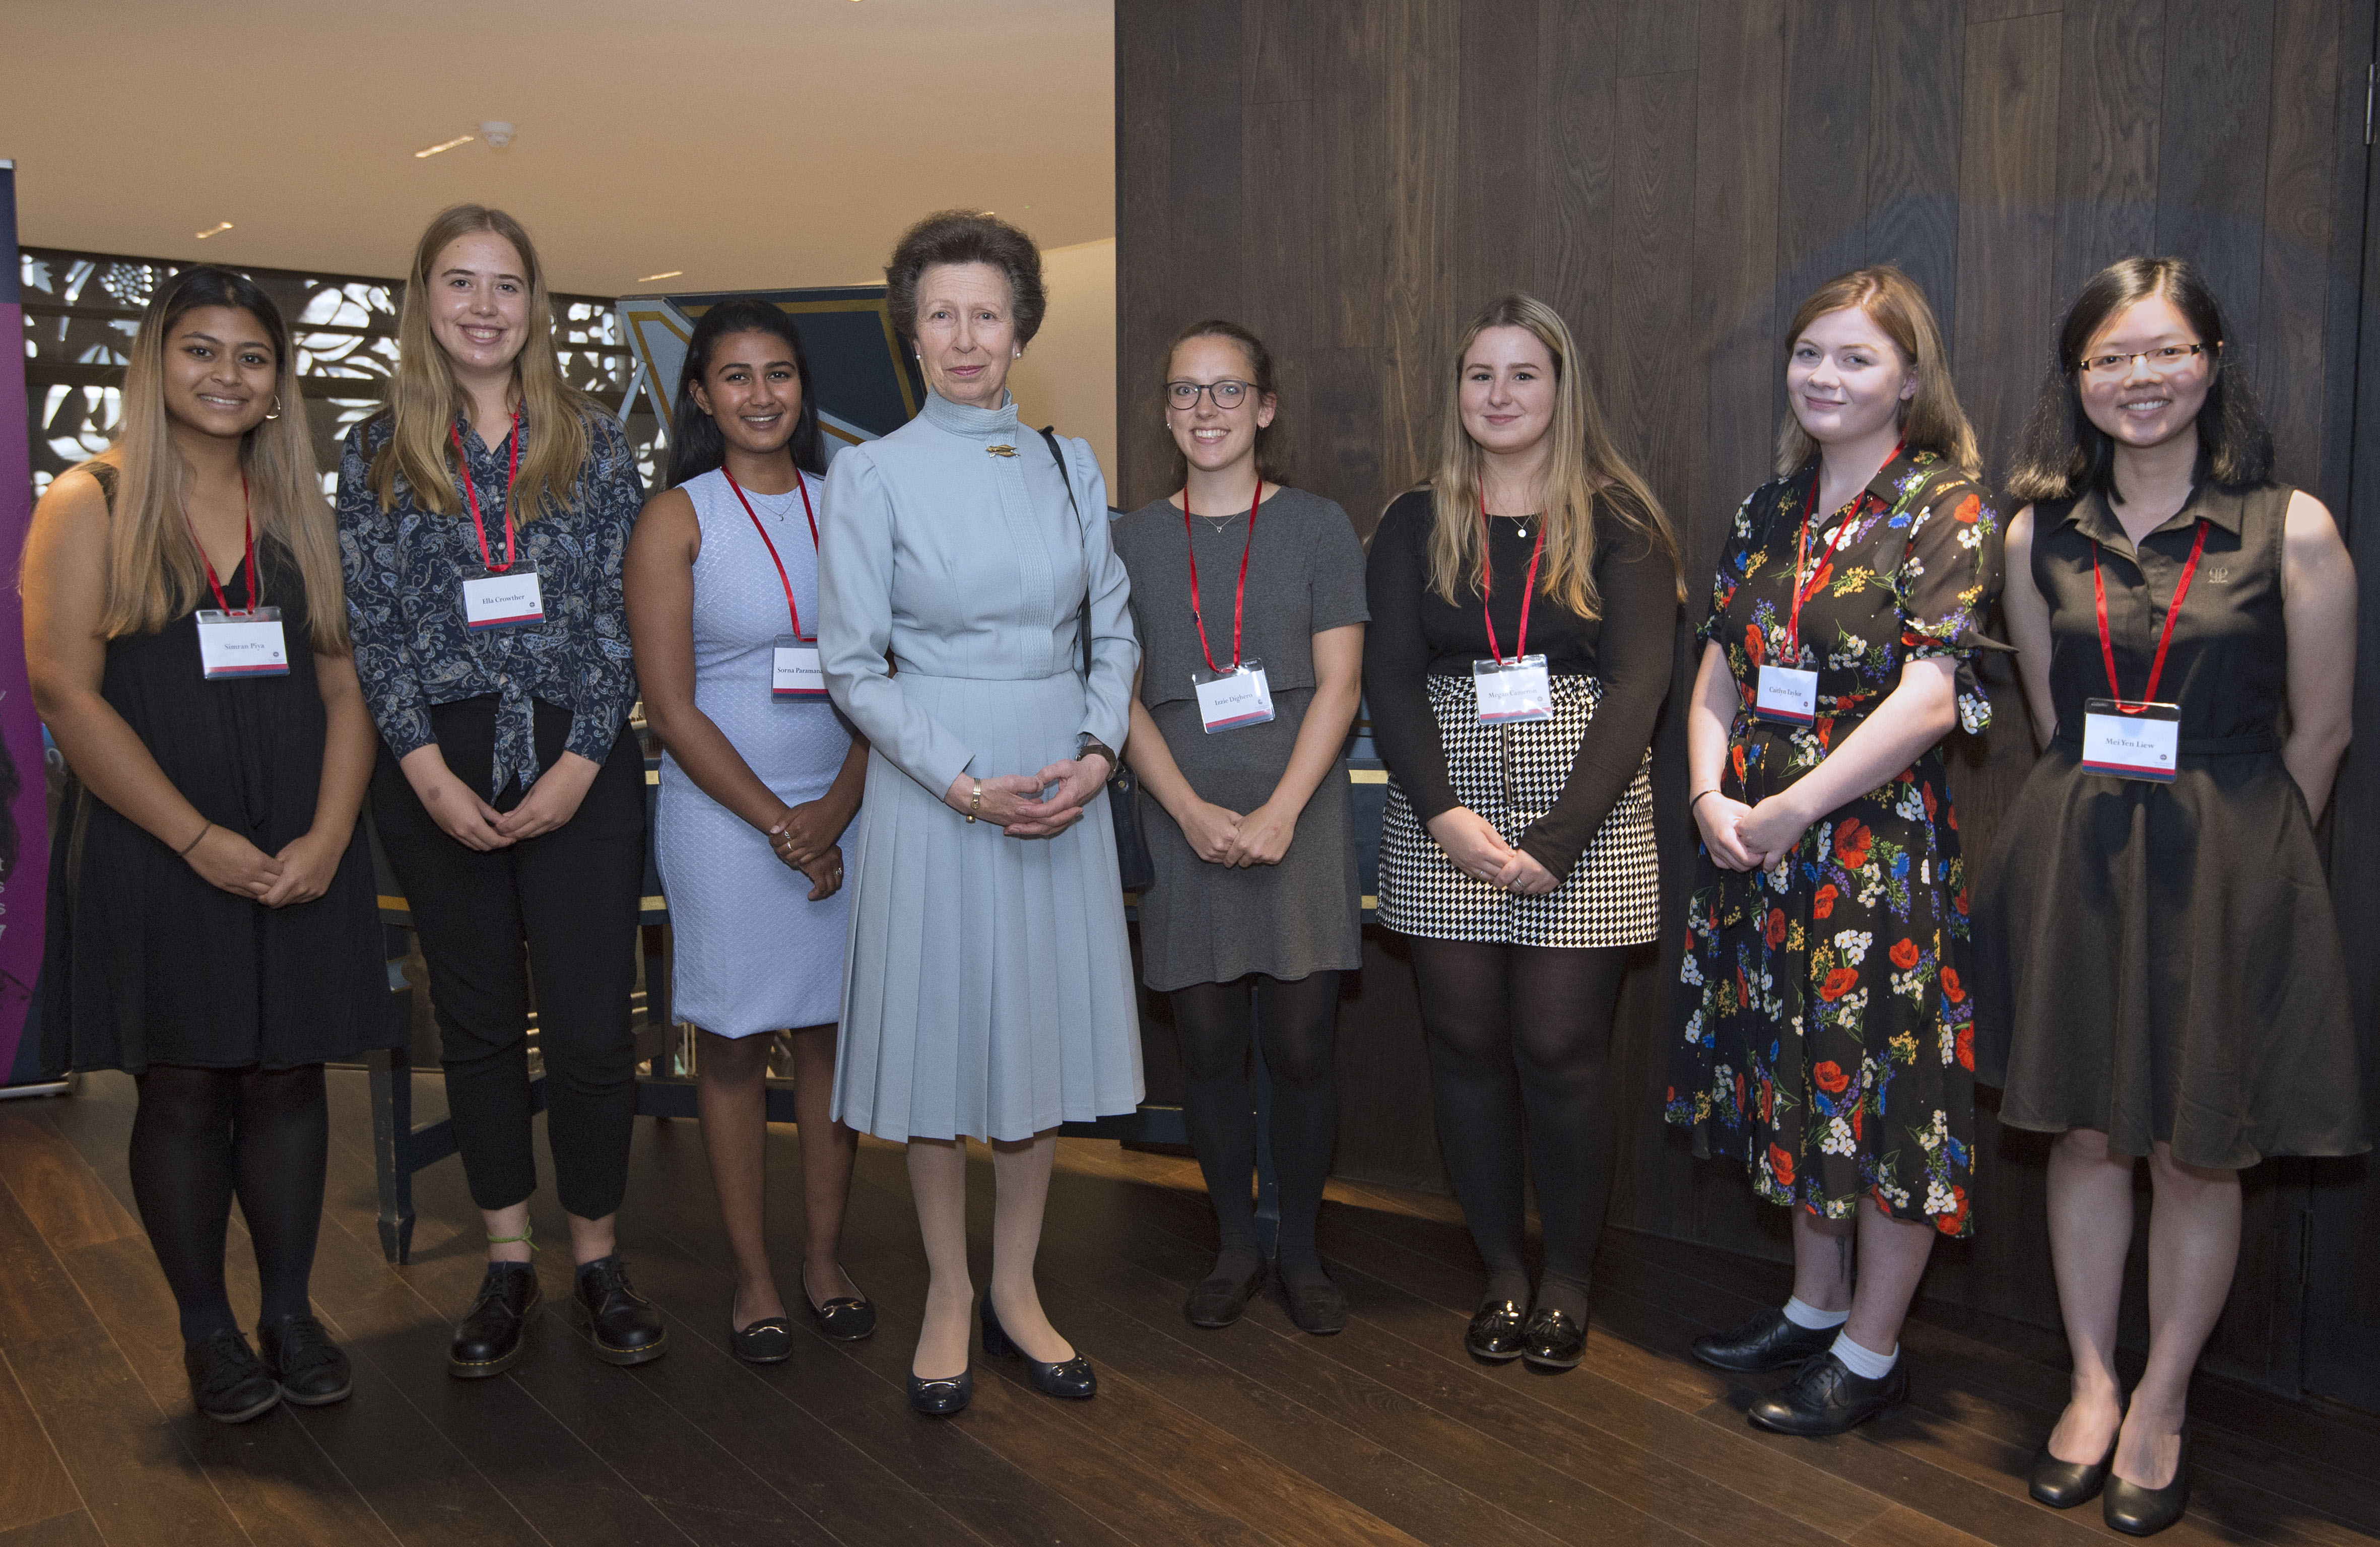 The Princess Royal meets Edinburgh Medical School students who collected the honorary posthumous degrees for the Edinburgh Seven